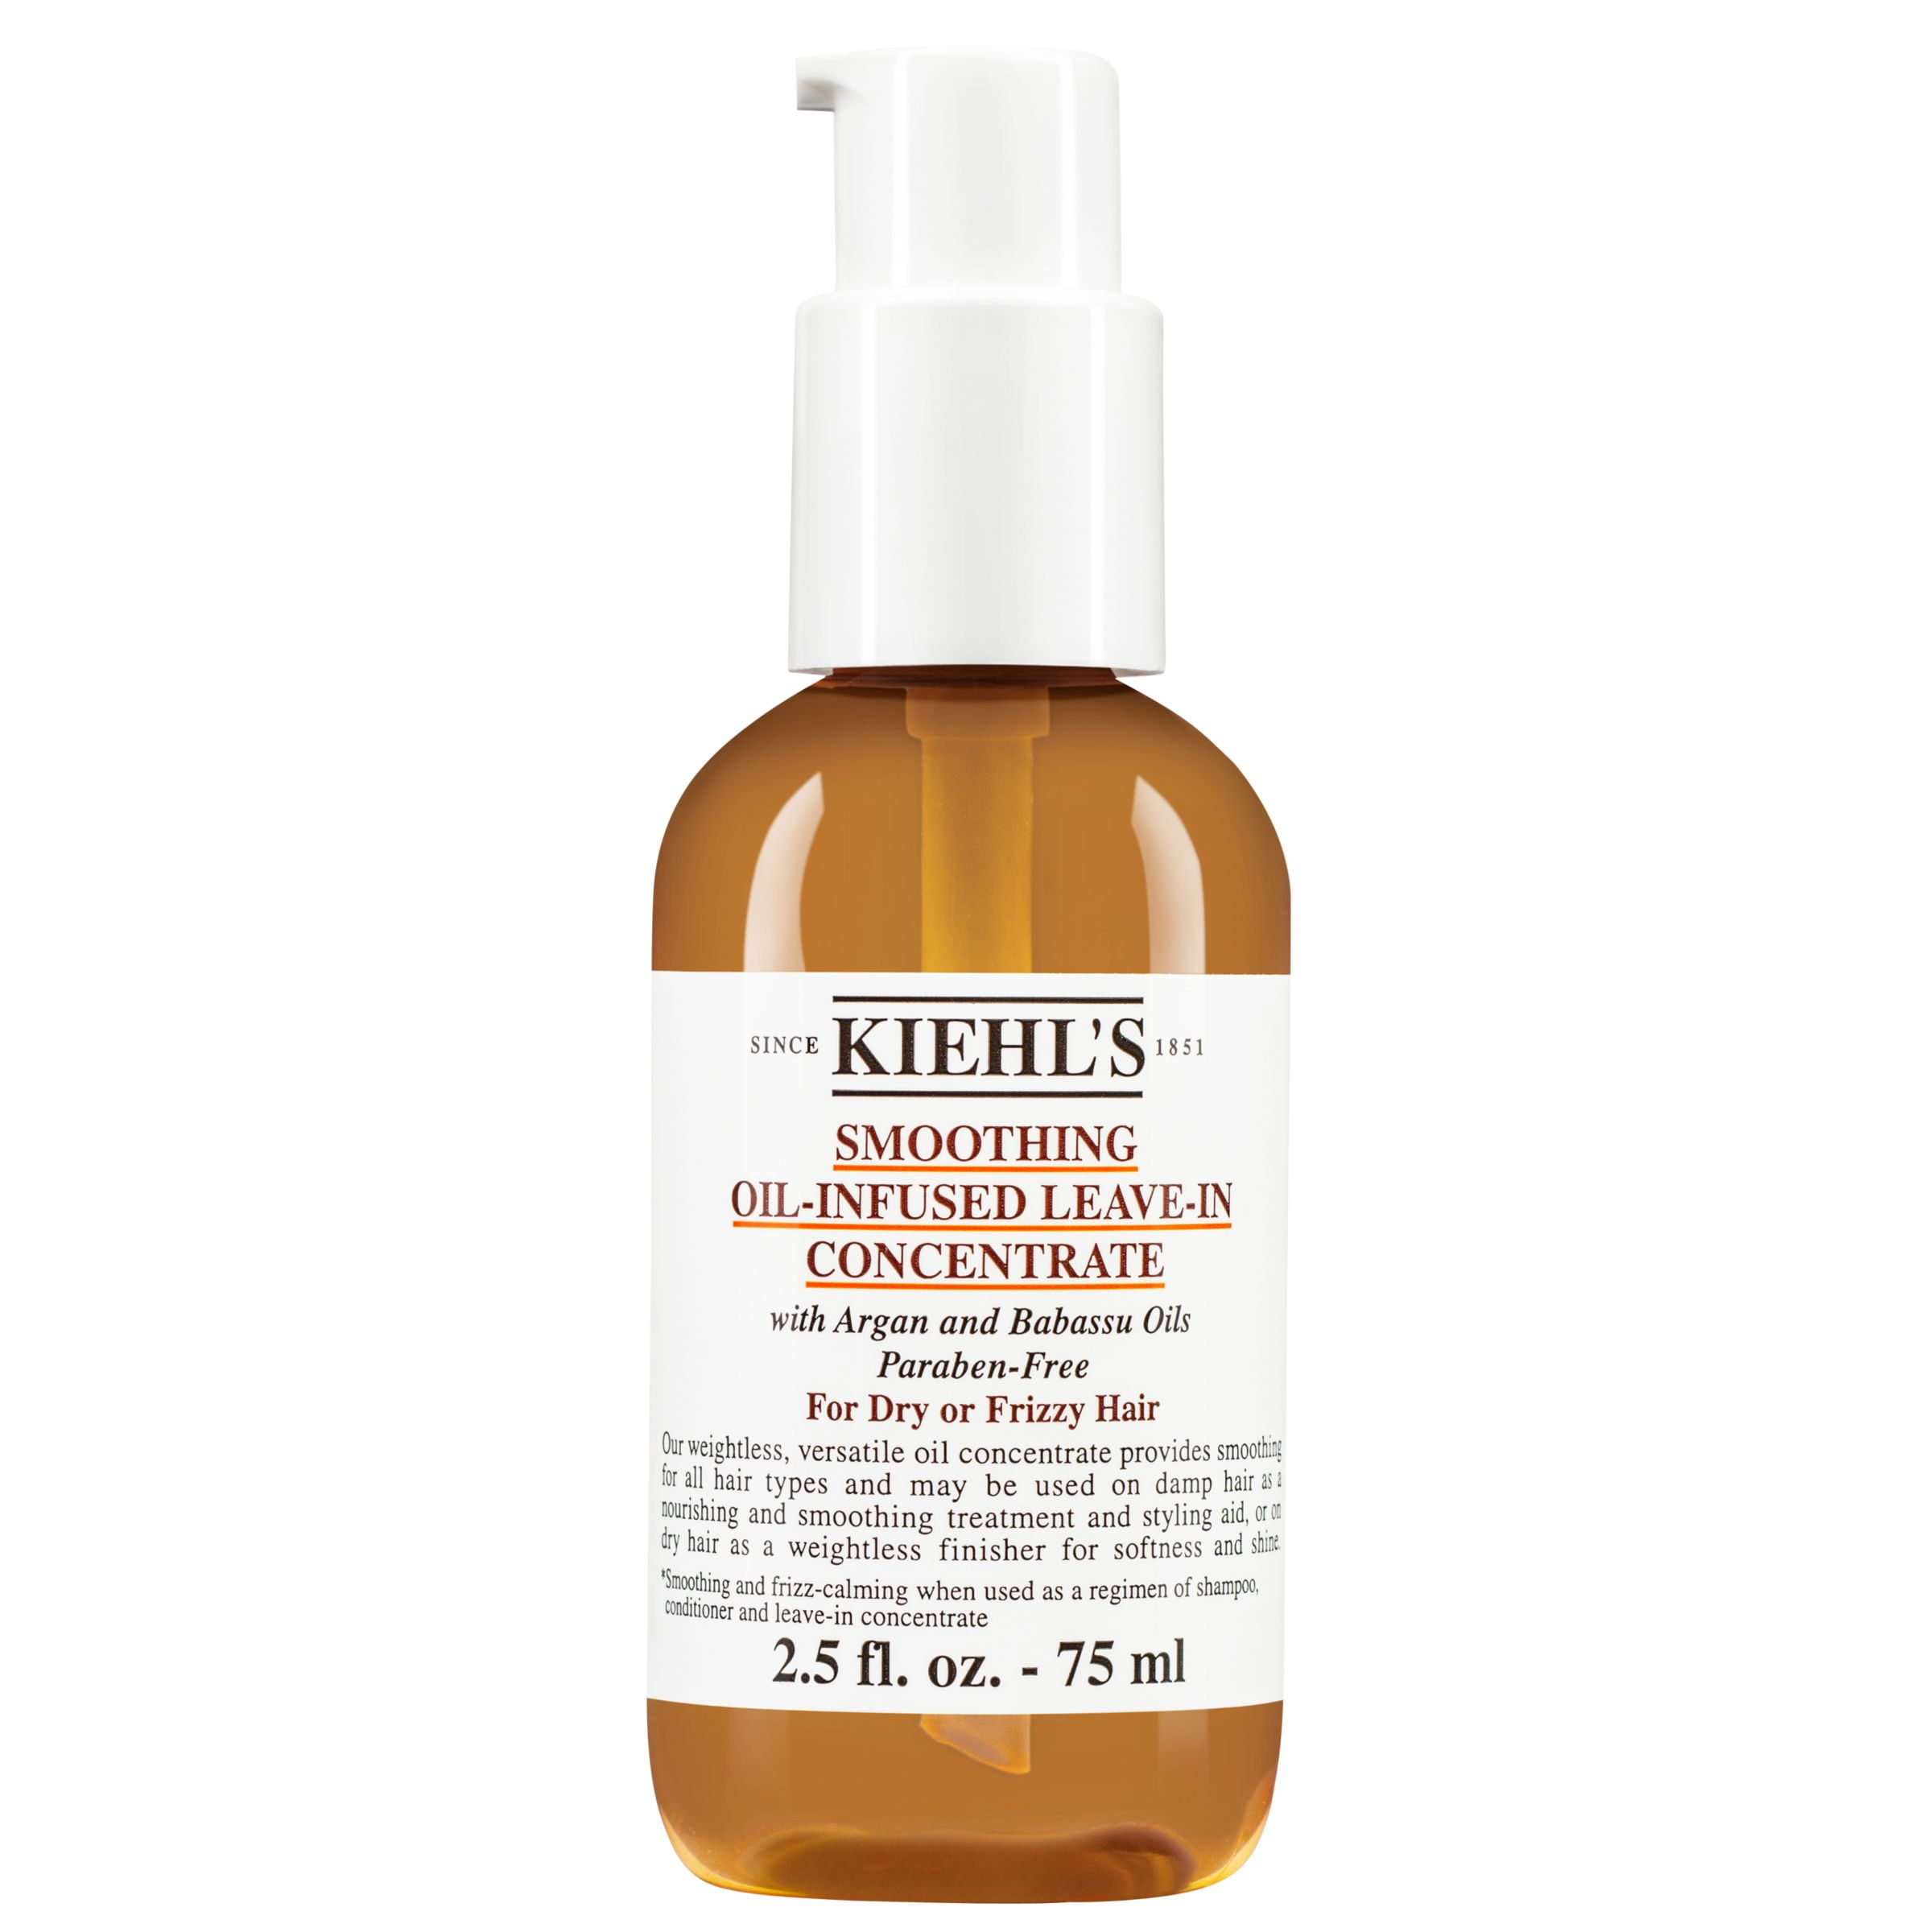 Kiehls Kiehl's Smoothing Oil-Infused Leave-In Concentrate, 75ml